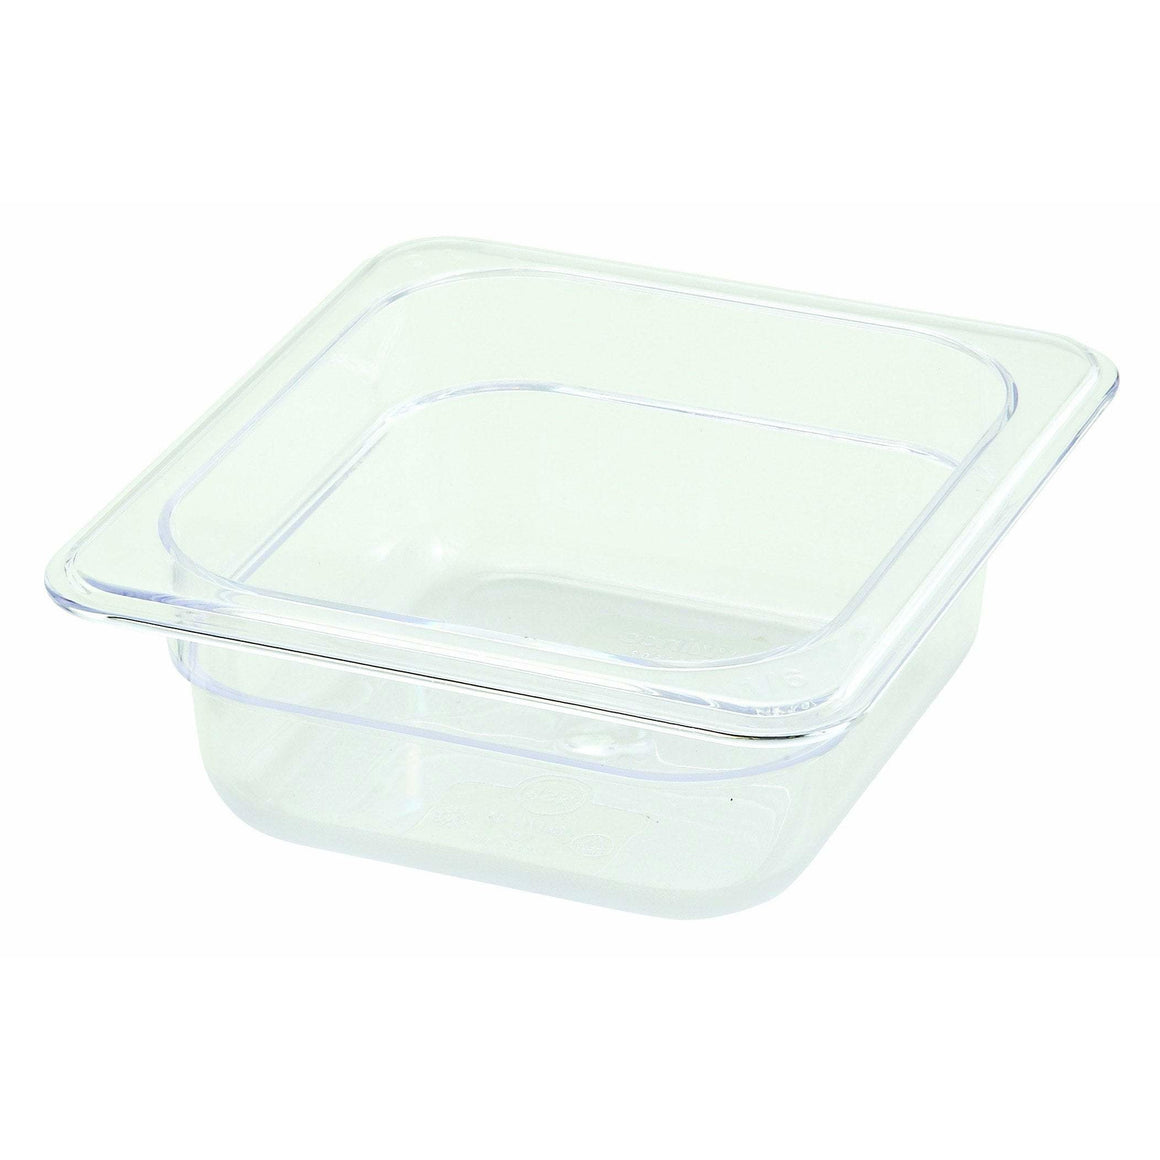 "Winco - SP7602 - PC Food Pan, 1/6 Size, 2-1/2"" - Food Storage"